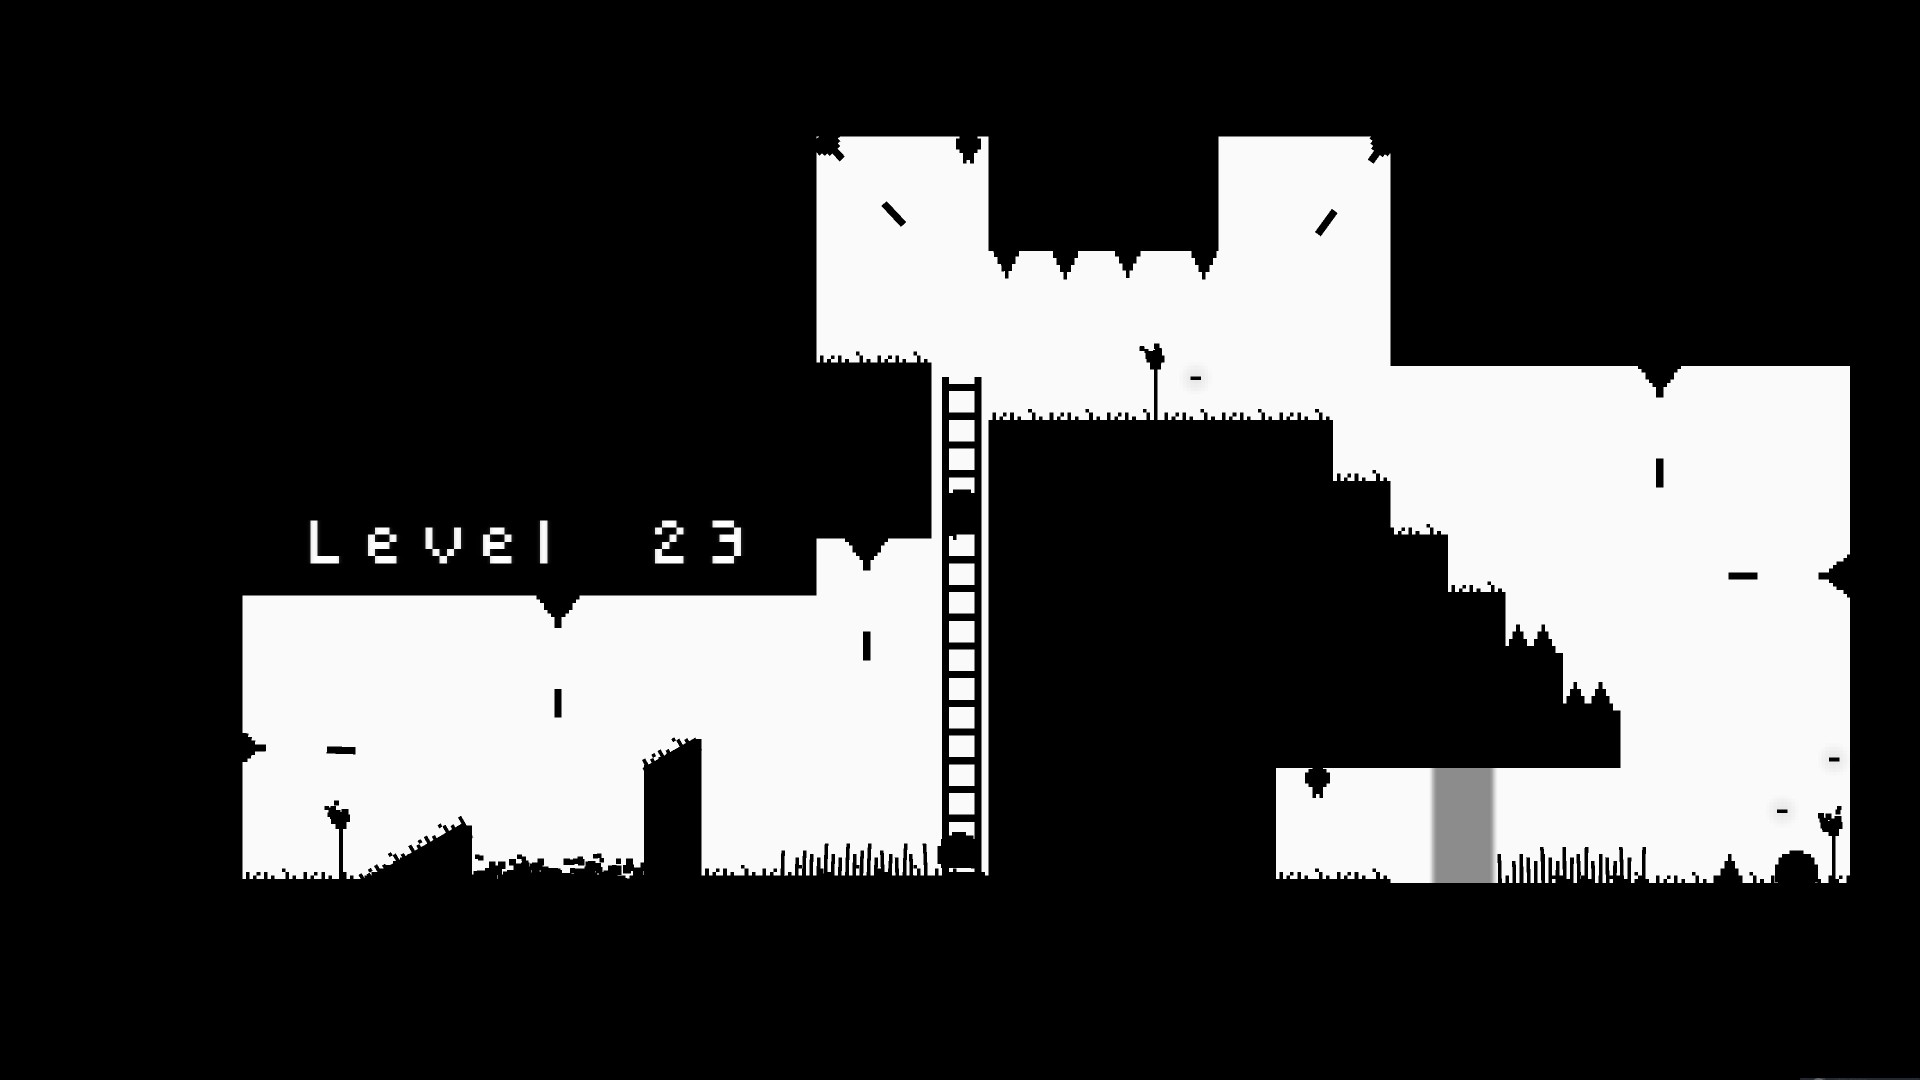 Blaite level 23. a ladder is in the center of the level up against a wall.